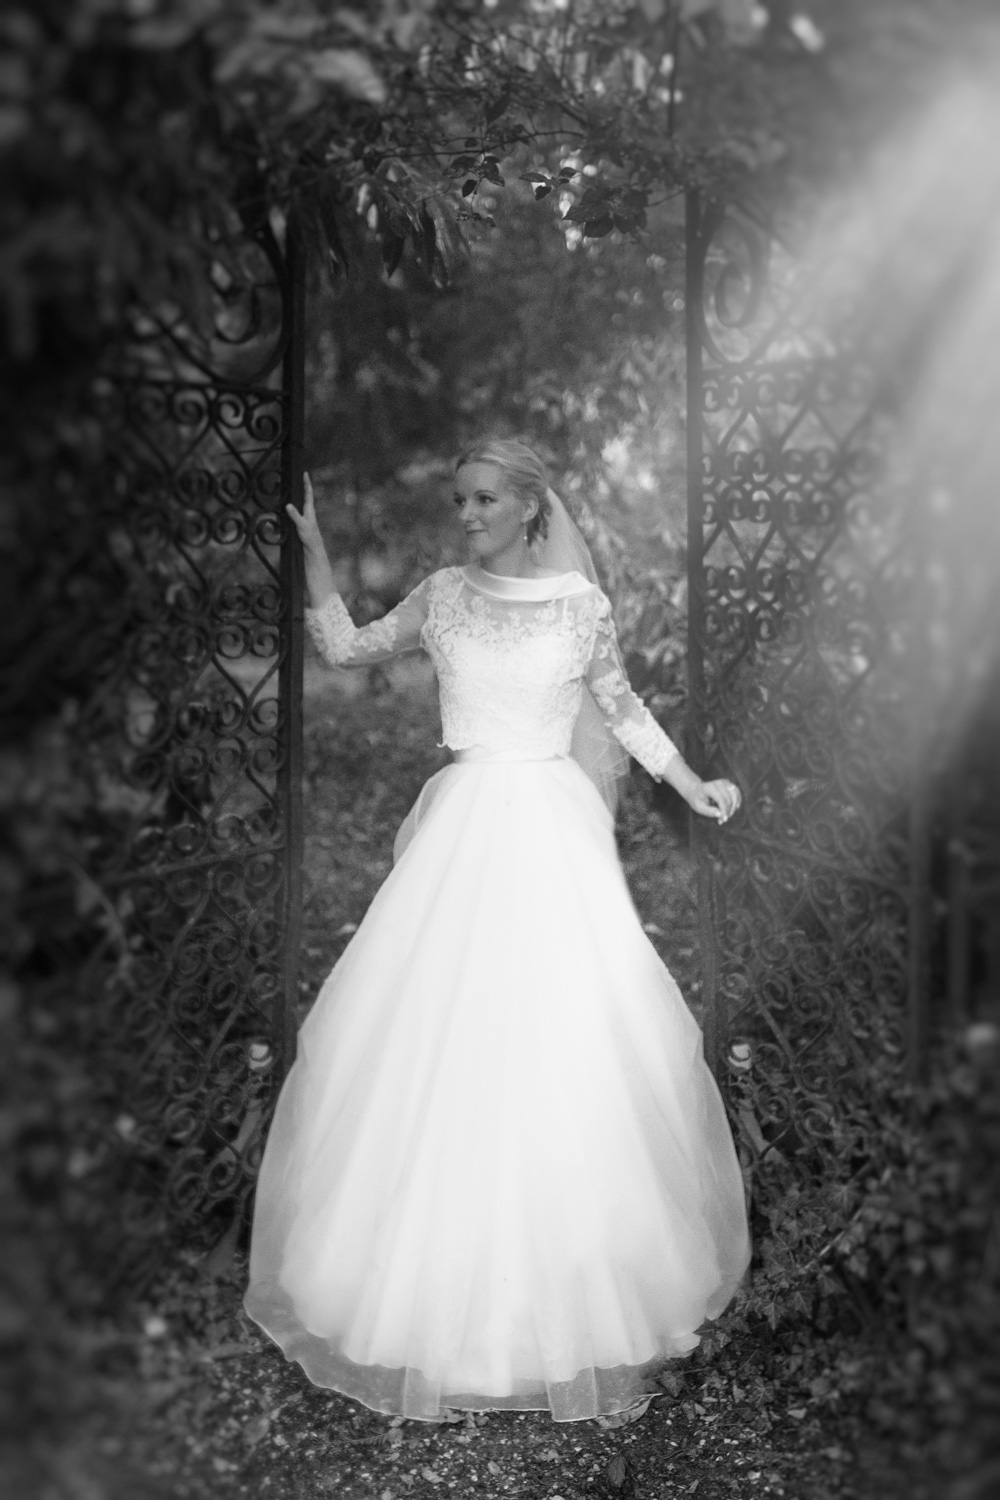 Wedding Photographer Essex - Chris Deller Photography